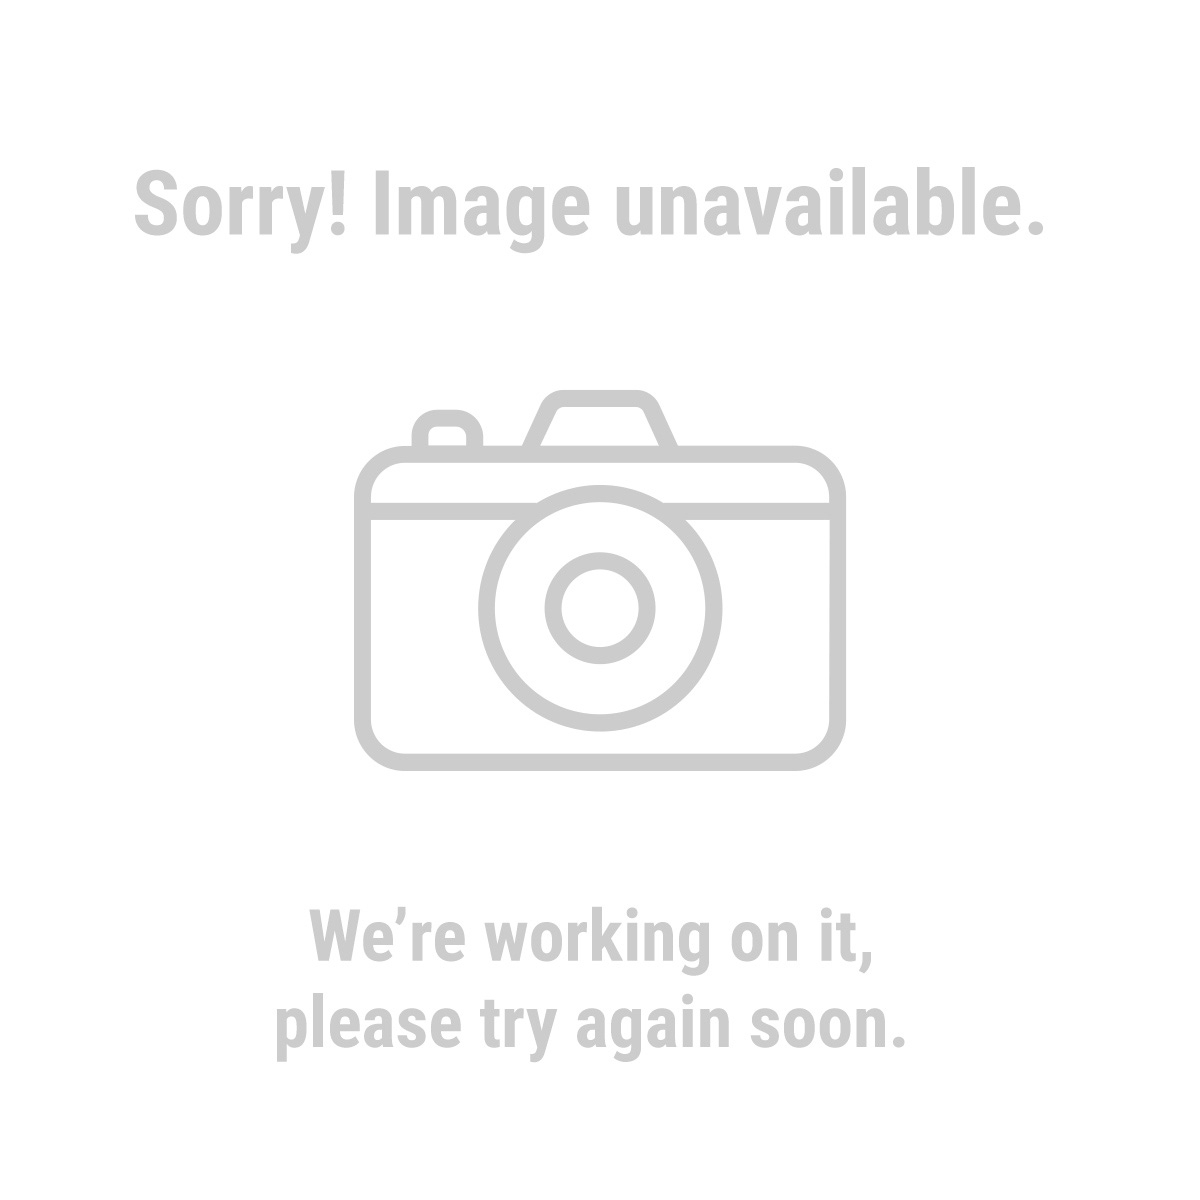 30 Piece Mini Lathe Tool Kit